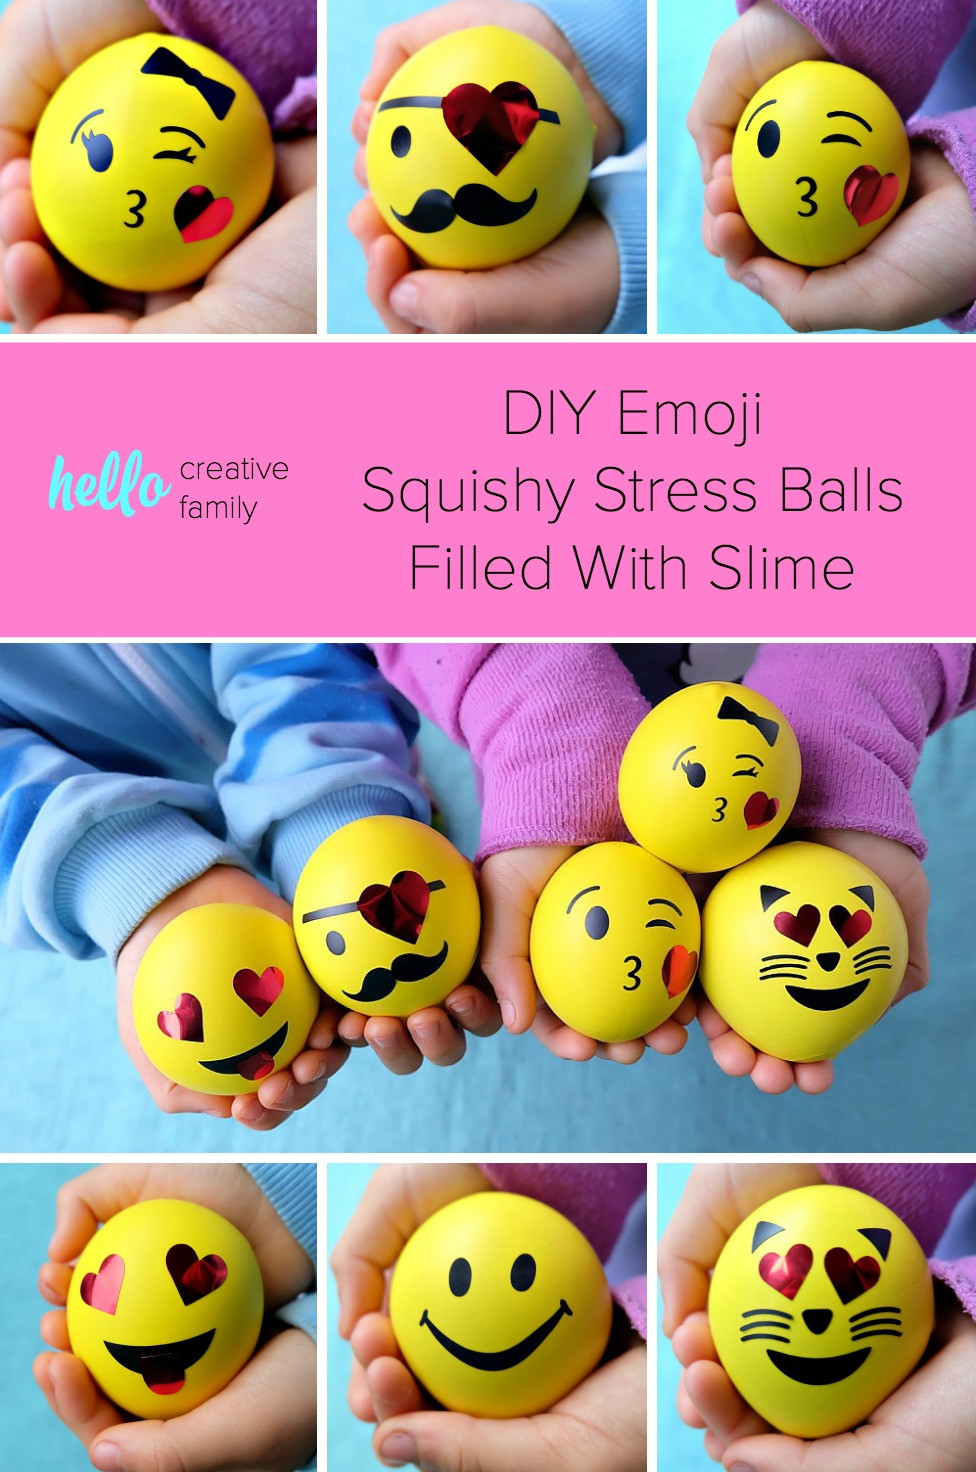 Best ideas about Stress Balls DIY . Save or Pin DIY Emoji Squishy Stress Balls Filled With Slime Hello Now.